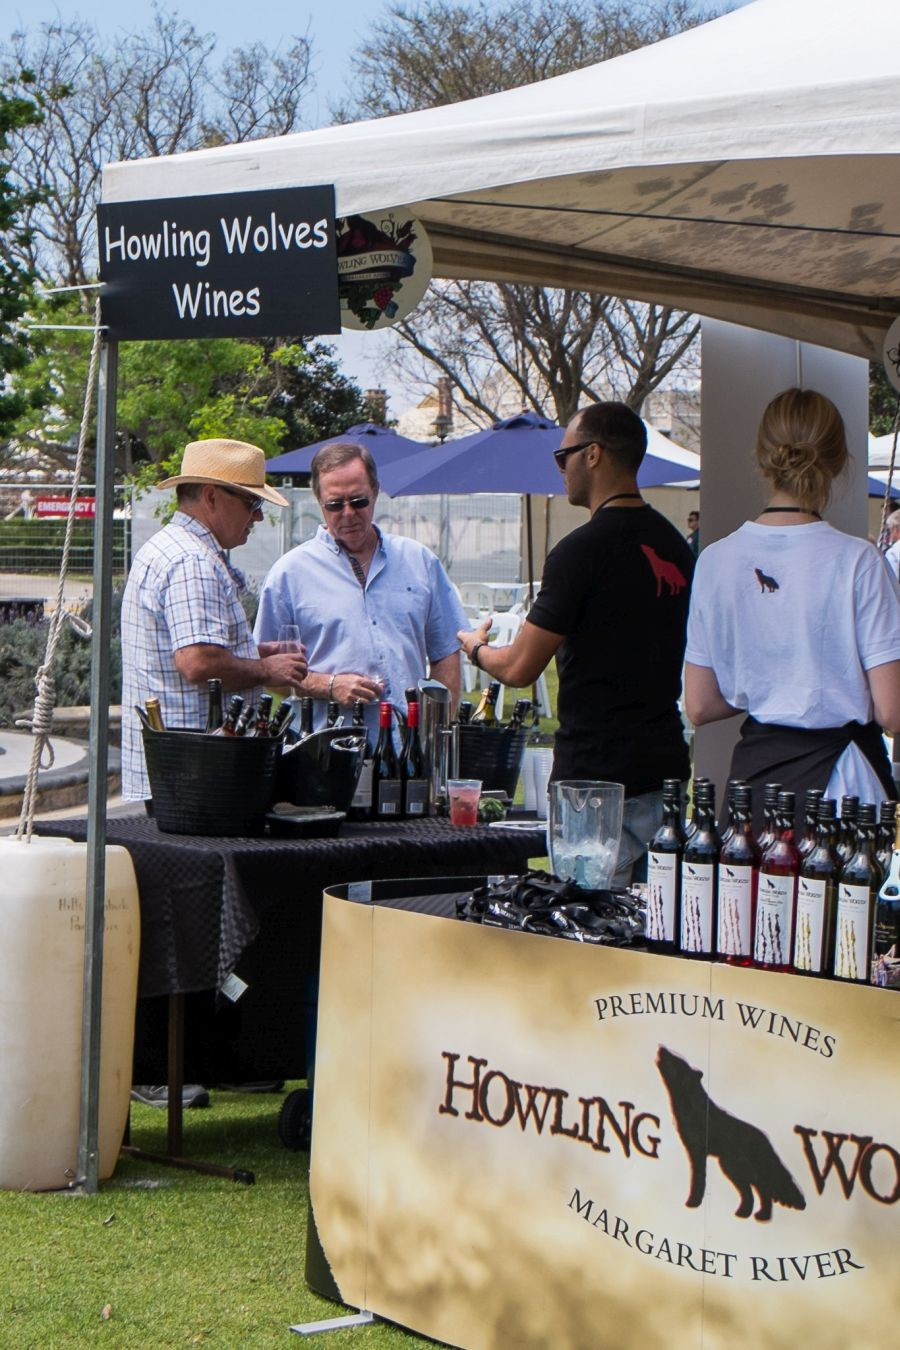 Howling Wolves Wines, Margaret River